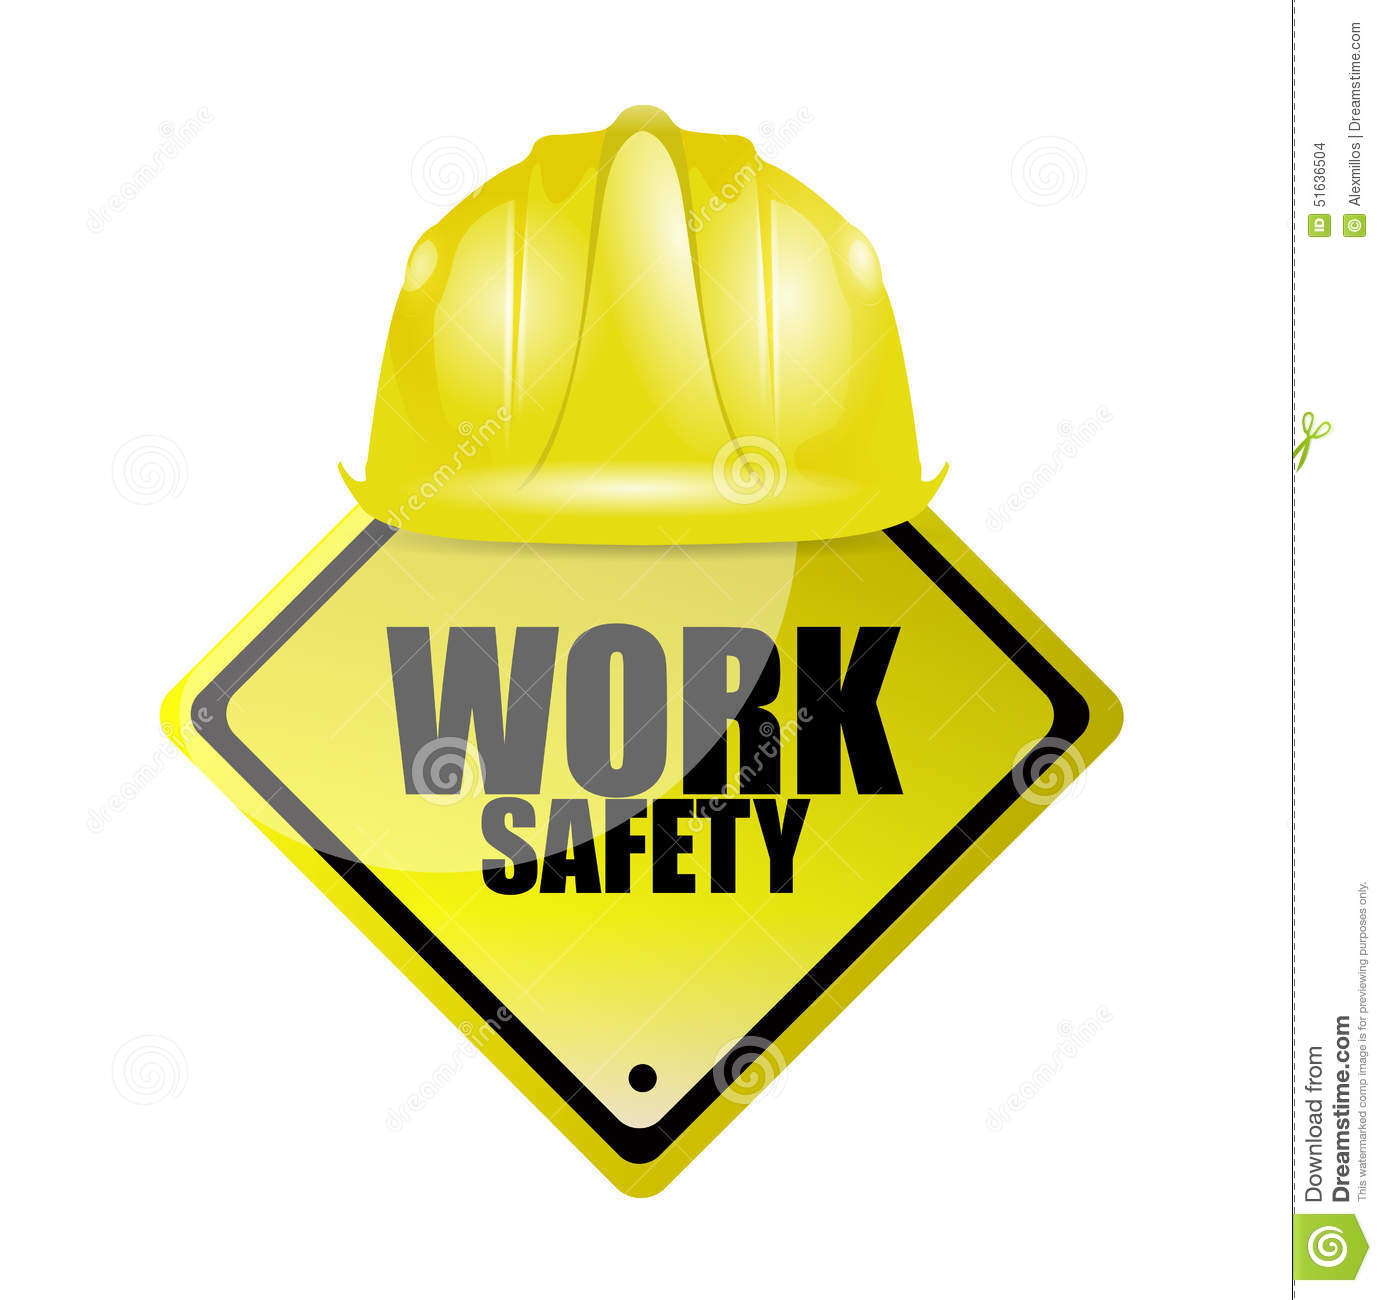 Design A Poster For Health And Safety In The Workplace